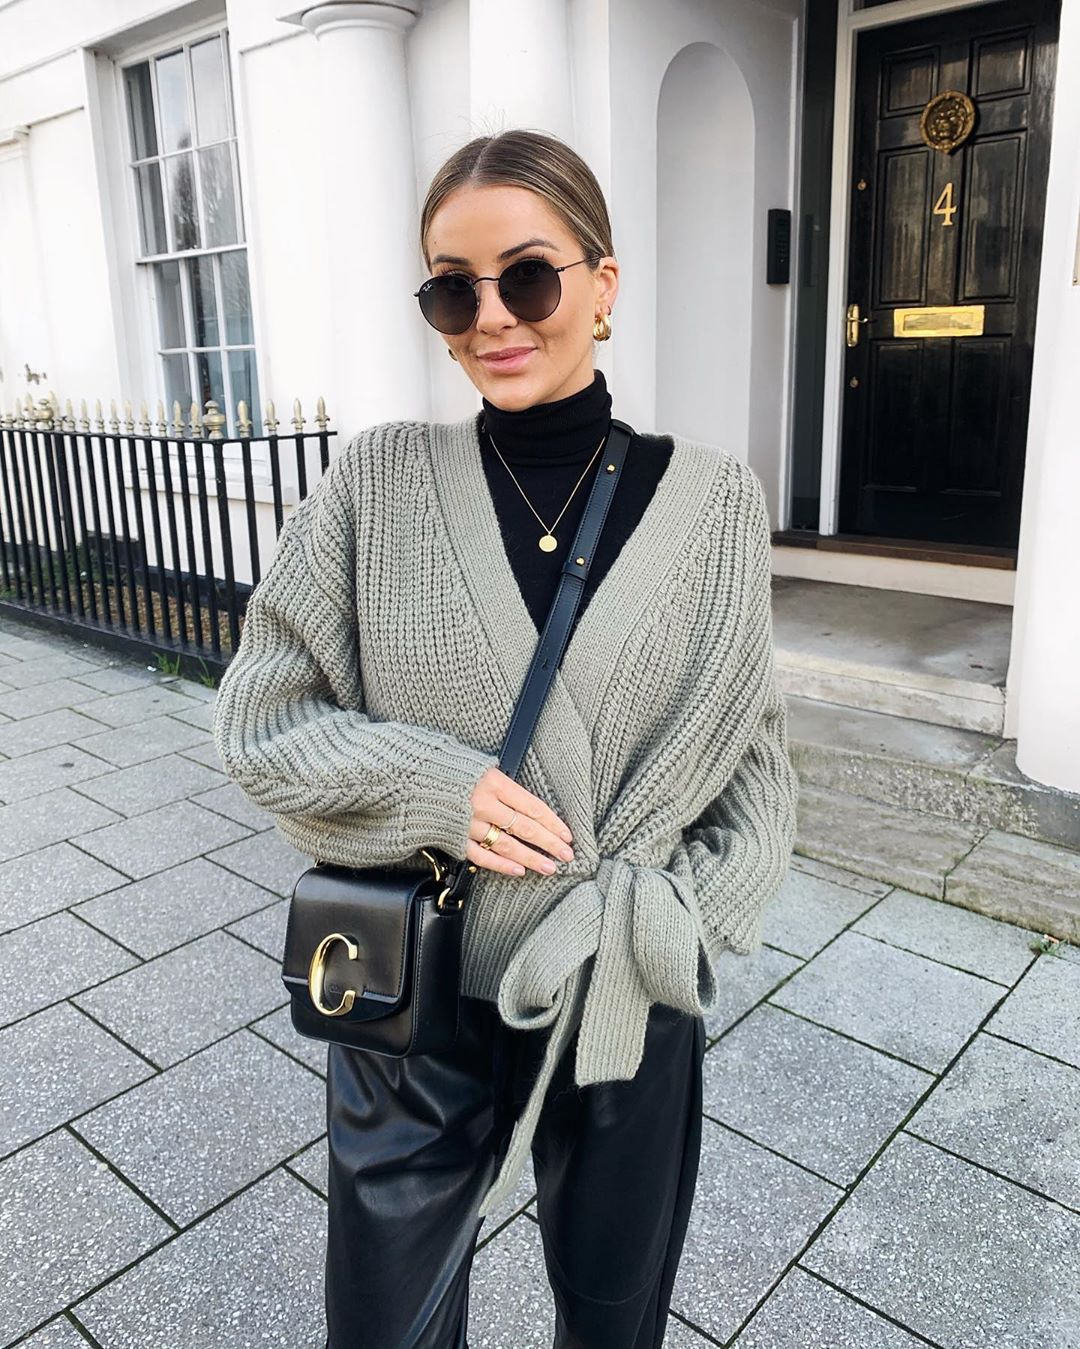 Refresh Your Winter Wardrobe With This Chic Sweater